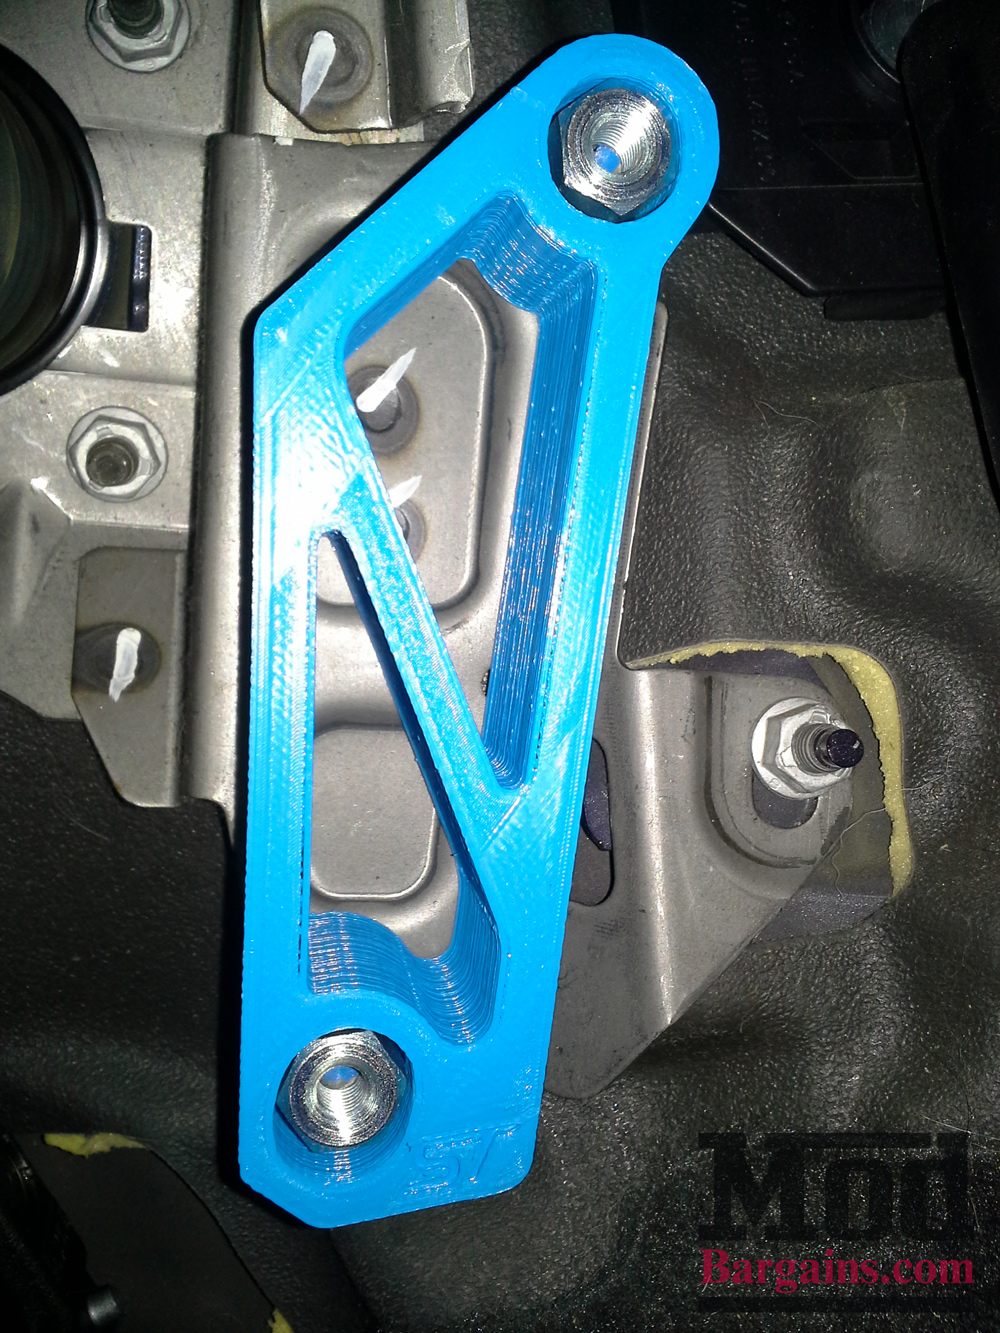 Ford Fiesta ST Accelerator Pedal Lift Spacer by Active Shift Designs at ModBargains.com